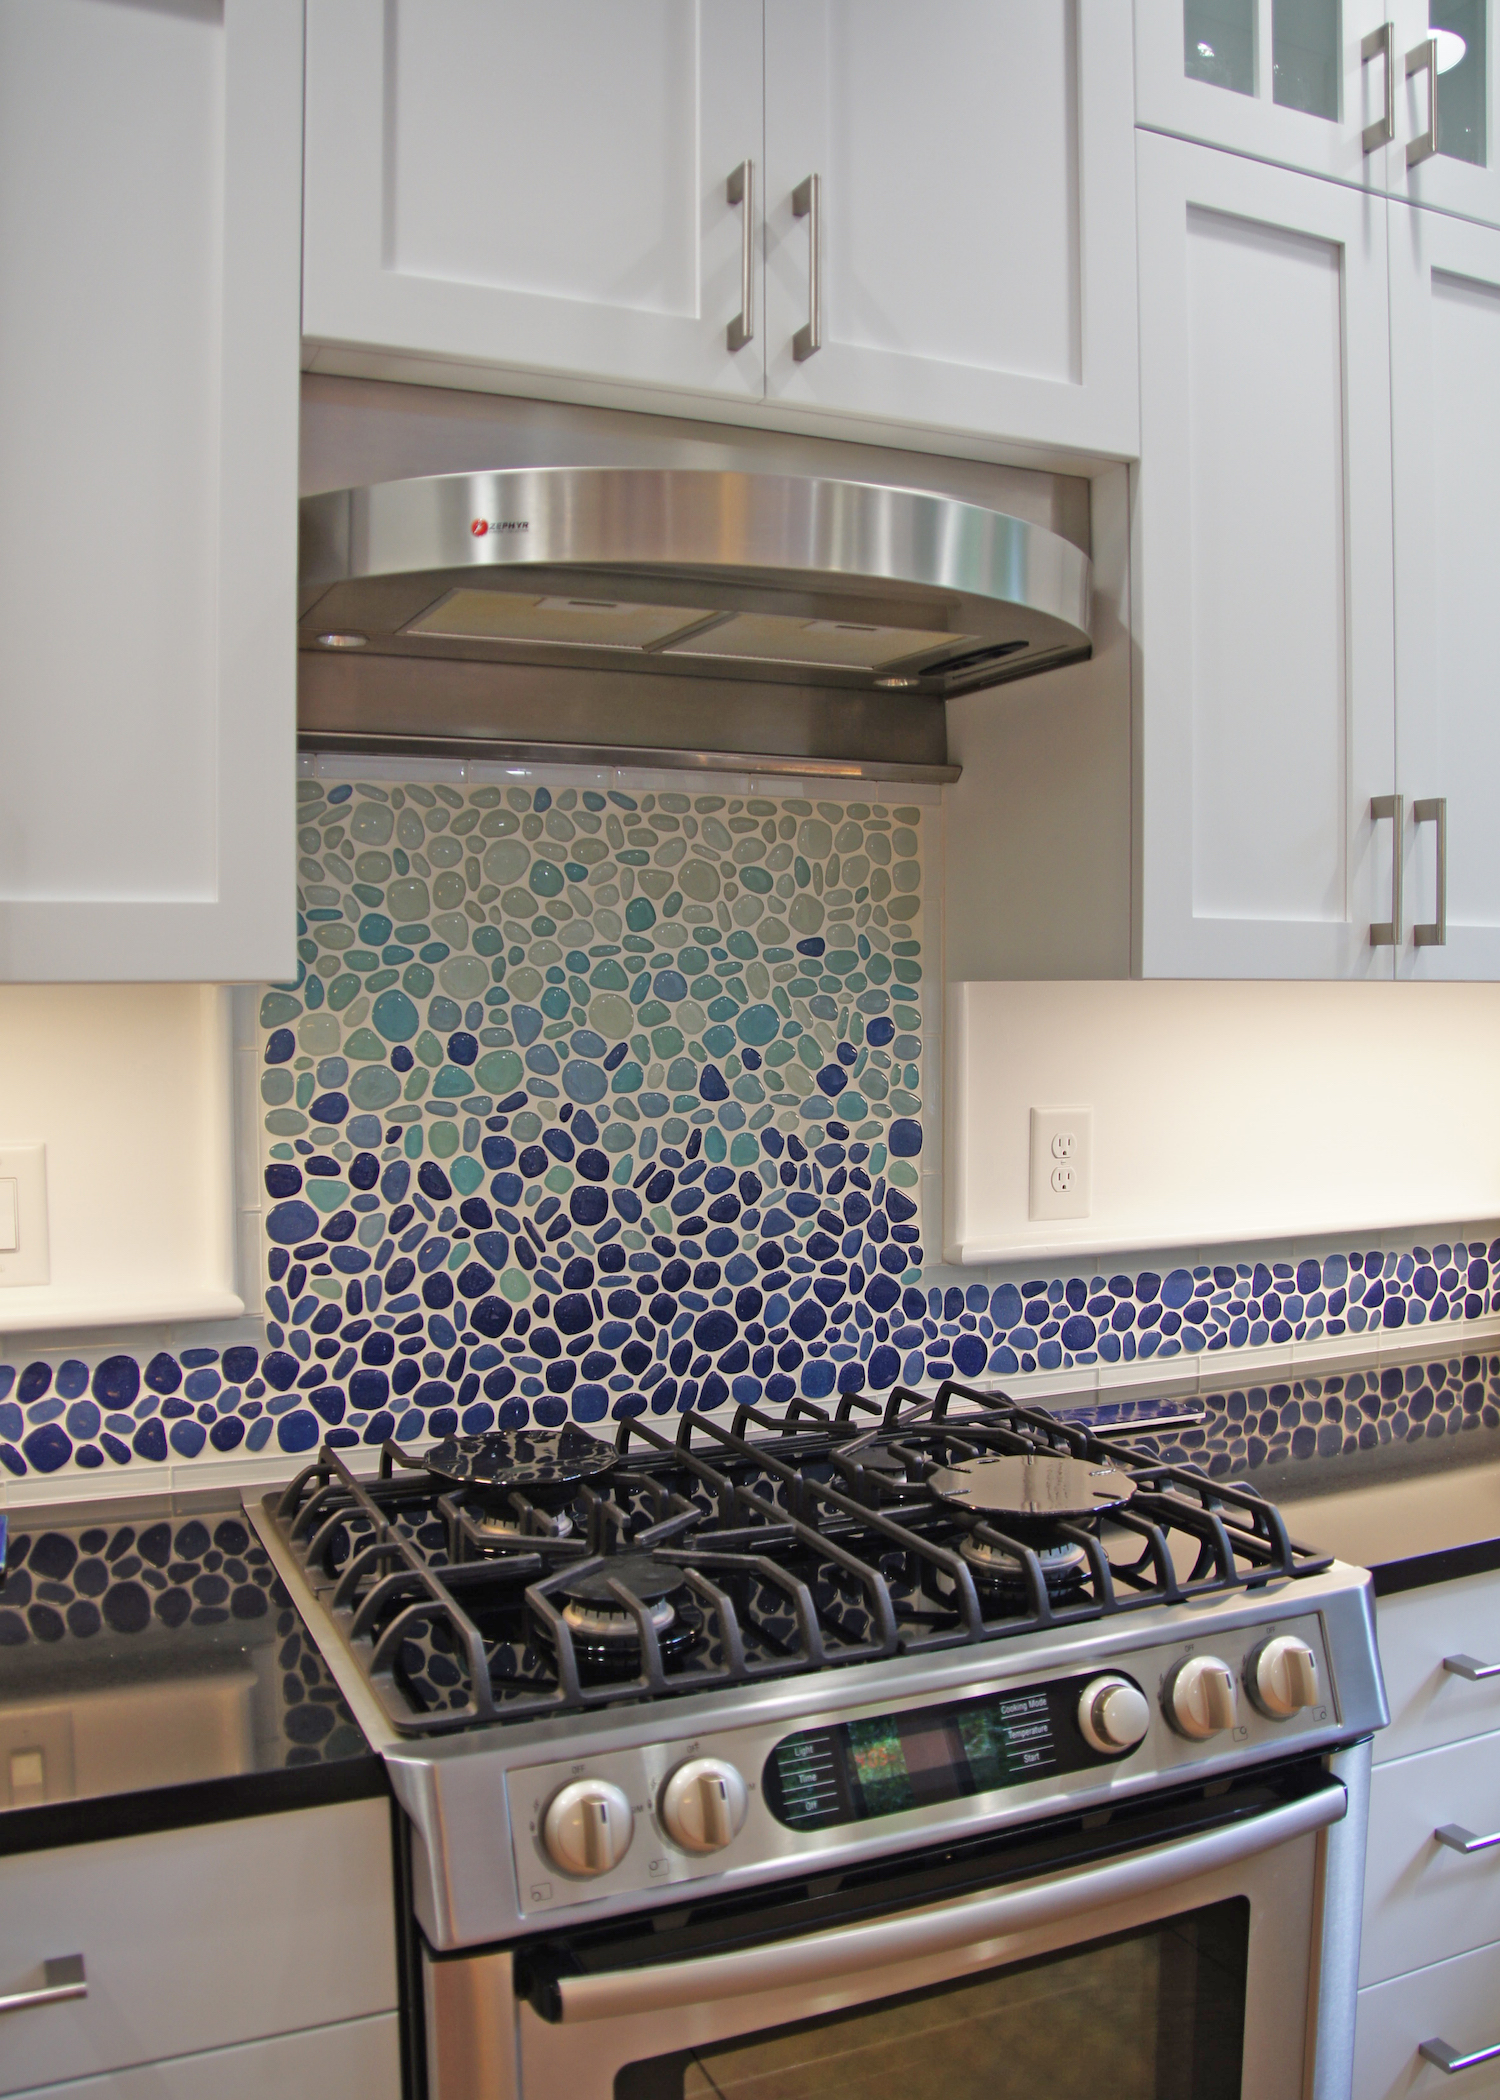 DP backsplash 01.jpg